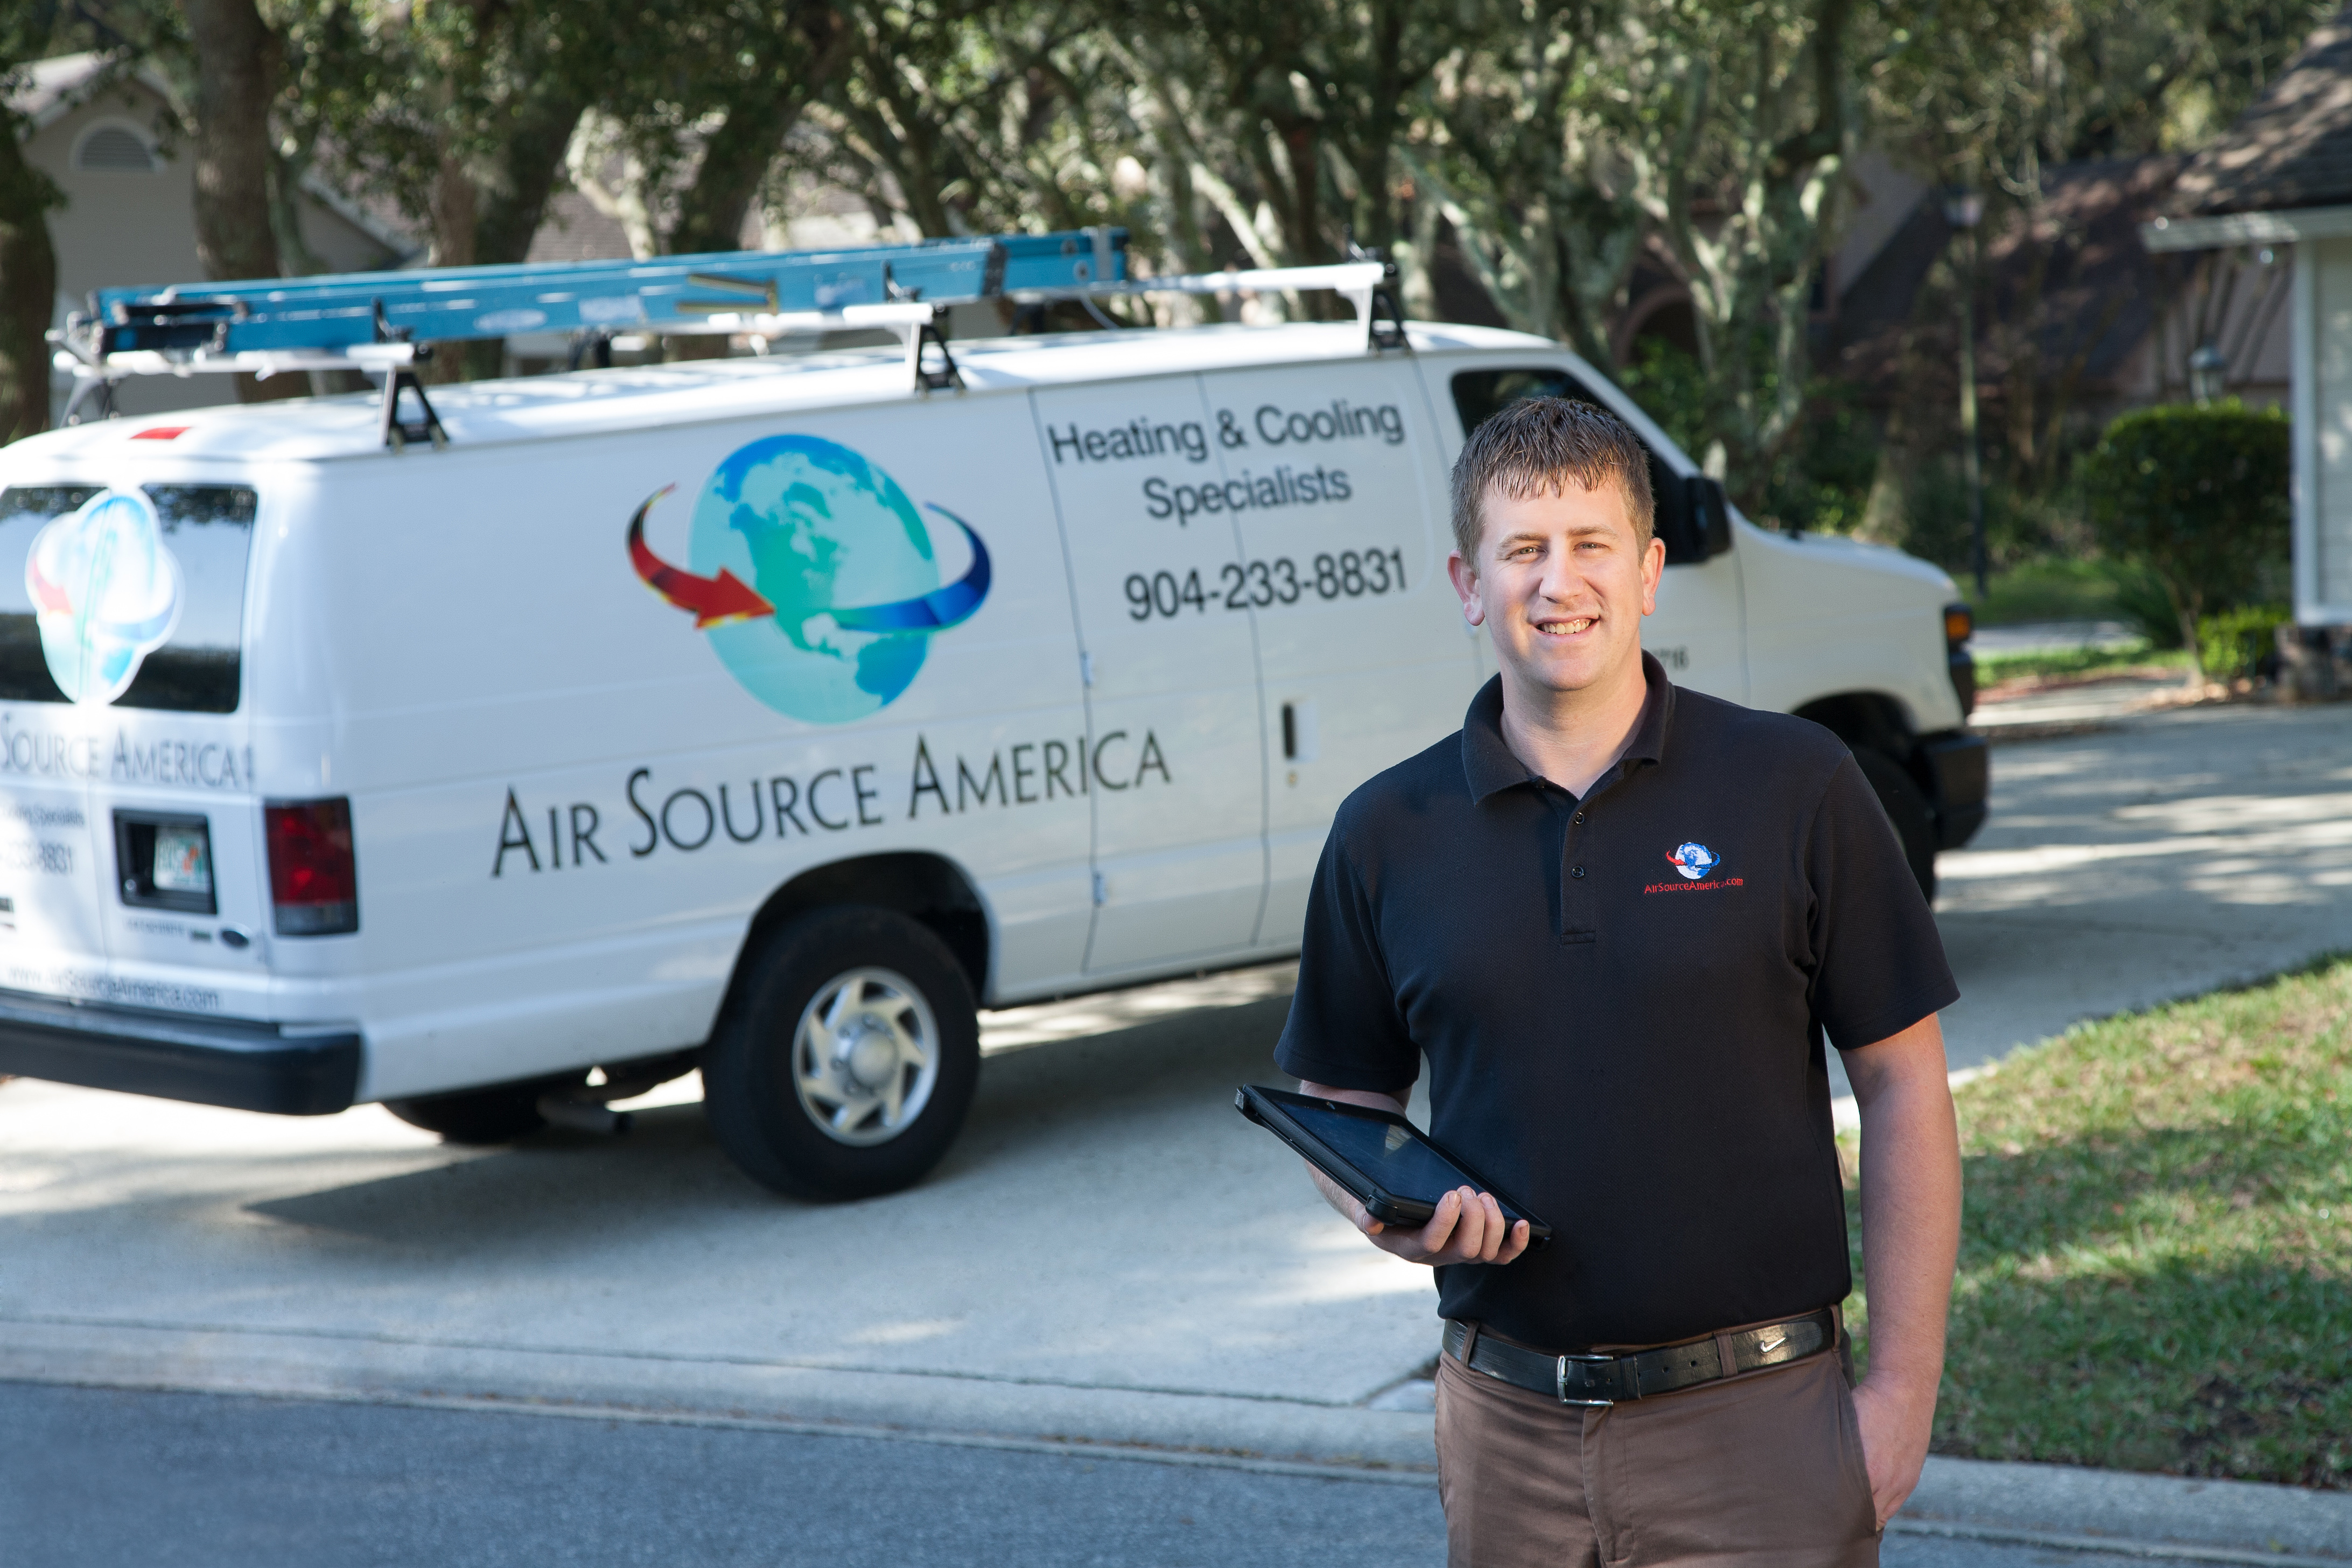 Air Source America Heating & Air Conditioning image 1